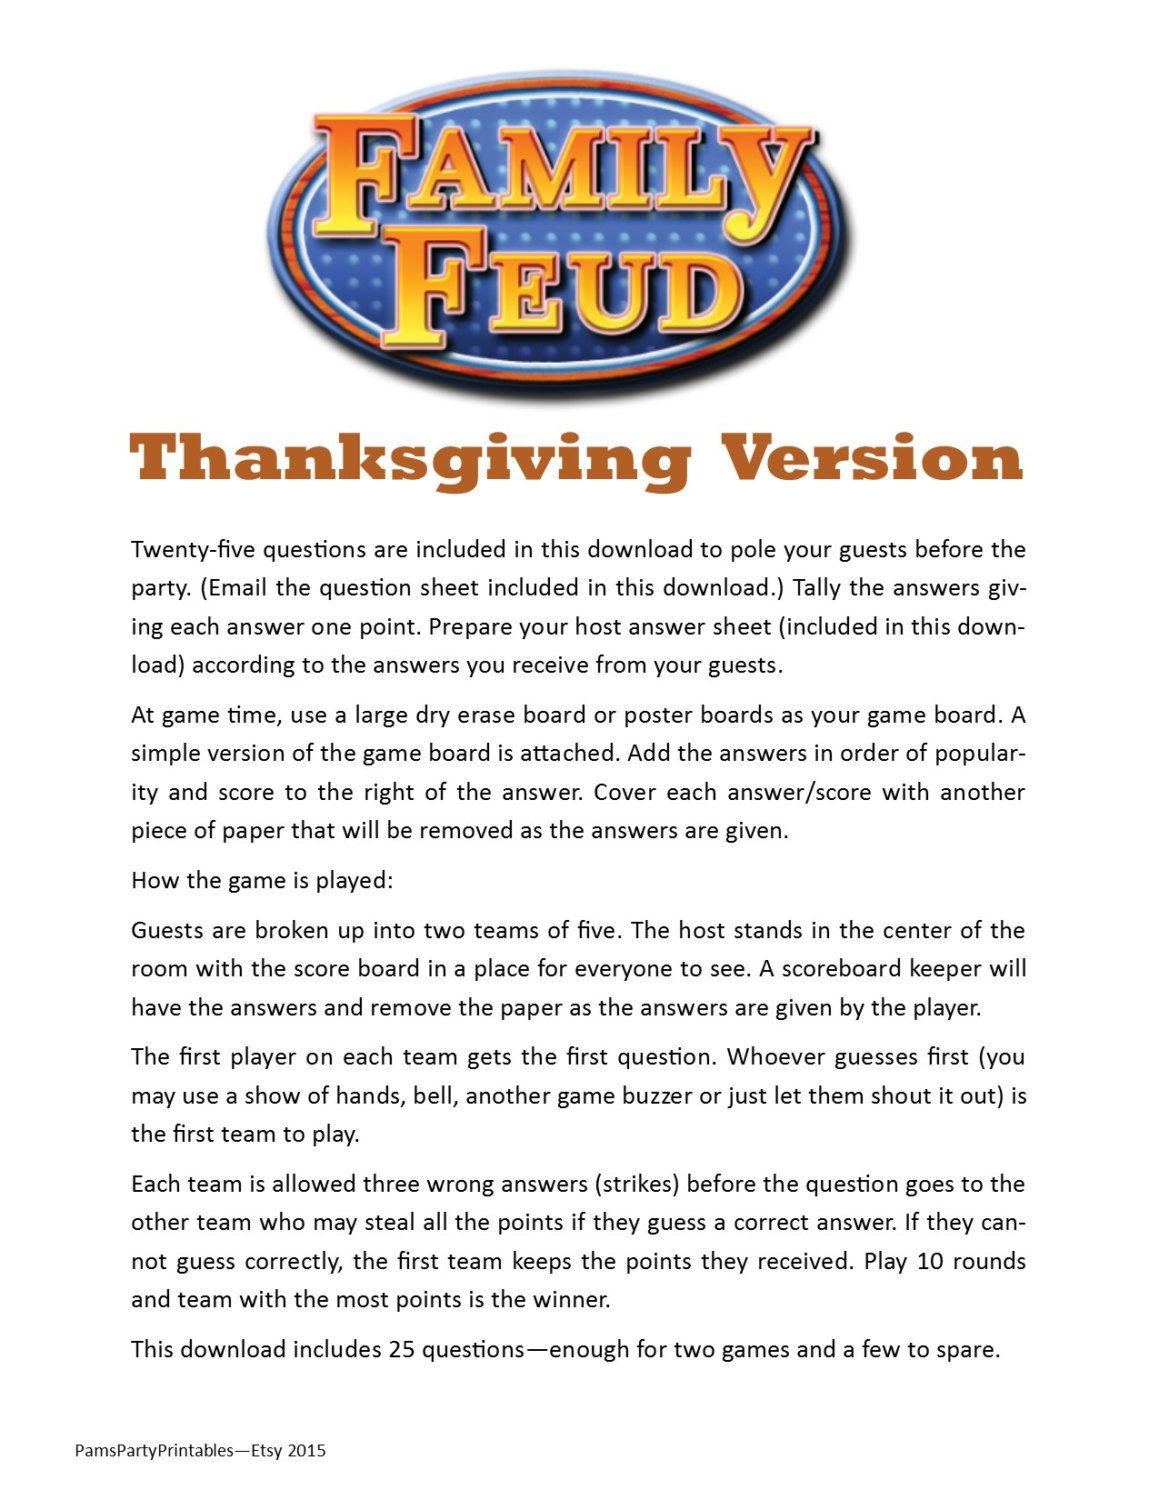 Thanksgiving family feud printable game thanksgiving Fun family thanksgiving games